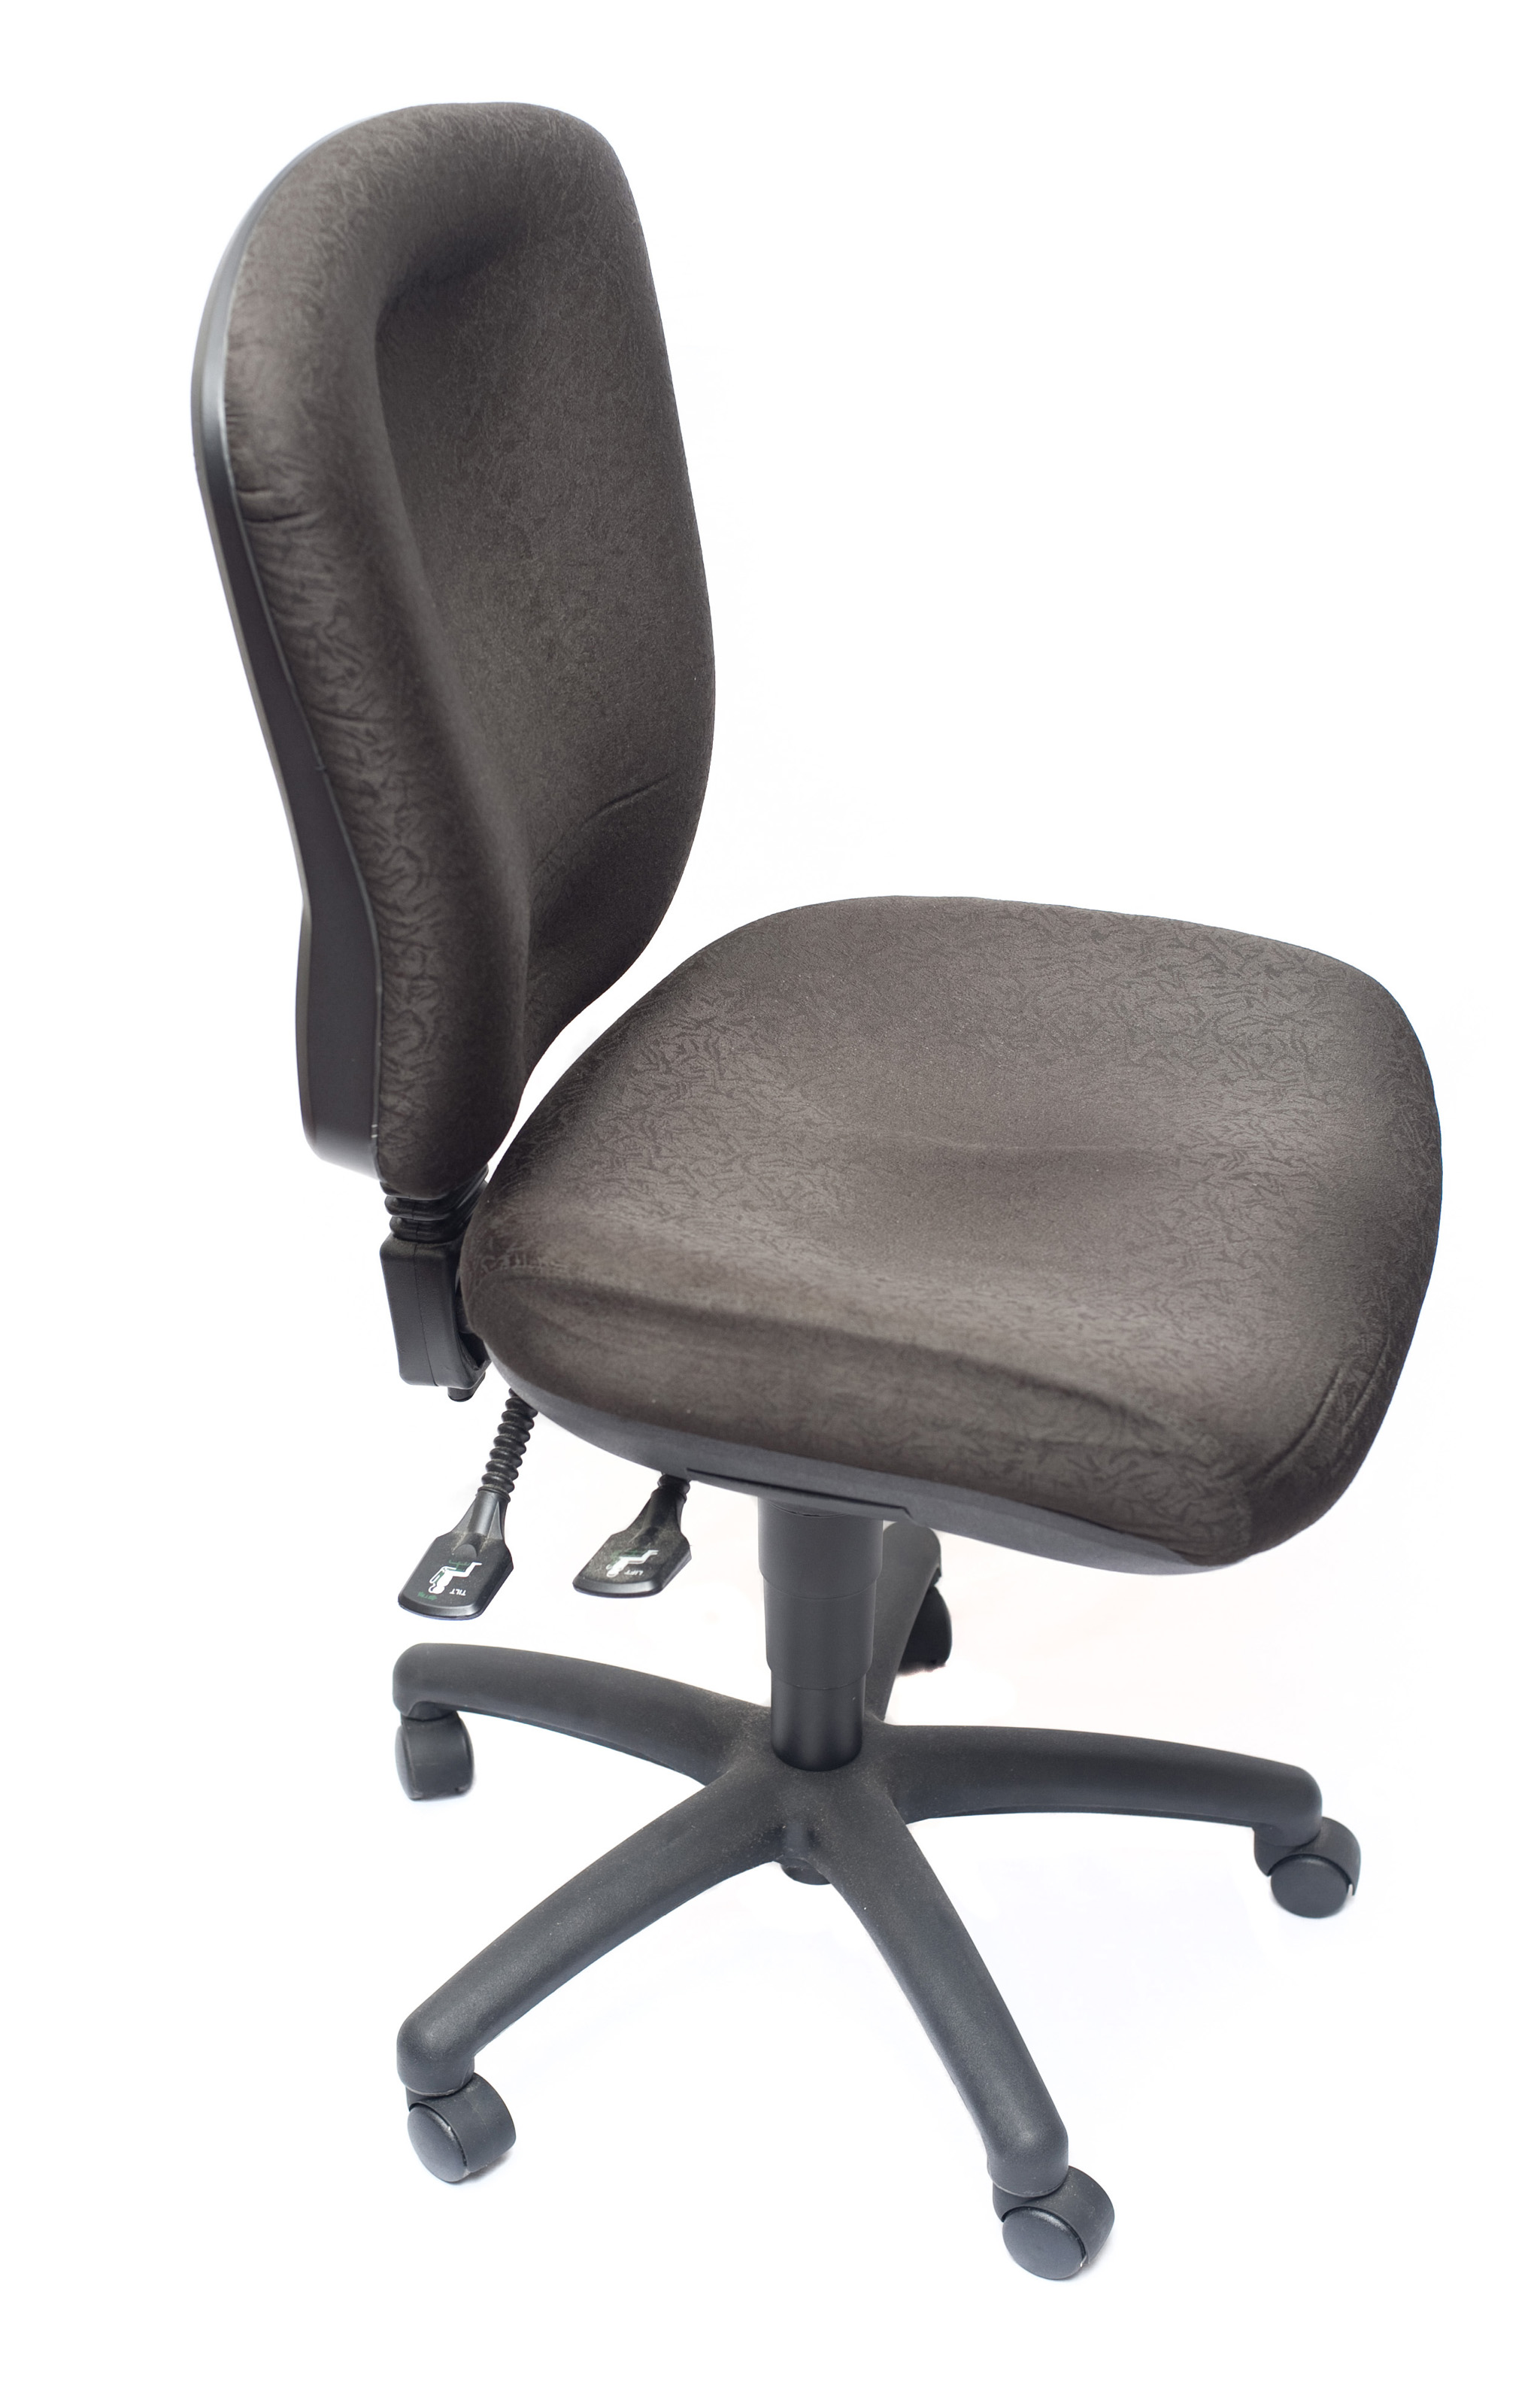 Fine Free Stock Photo 5379 Comfortable Black Office Chair Unemploymentrelief Wooden Chair Designs For Living Room Unemploymentrelieforg